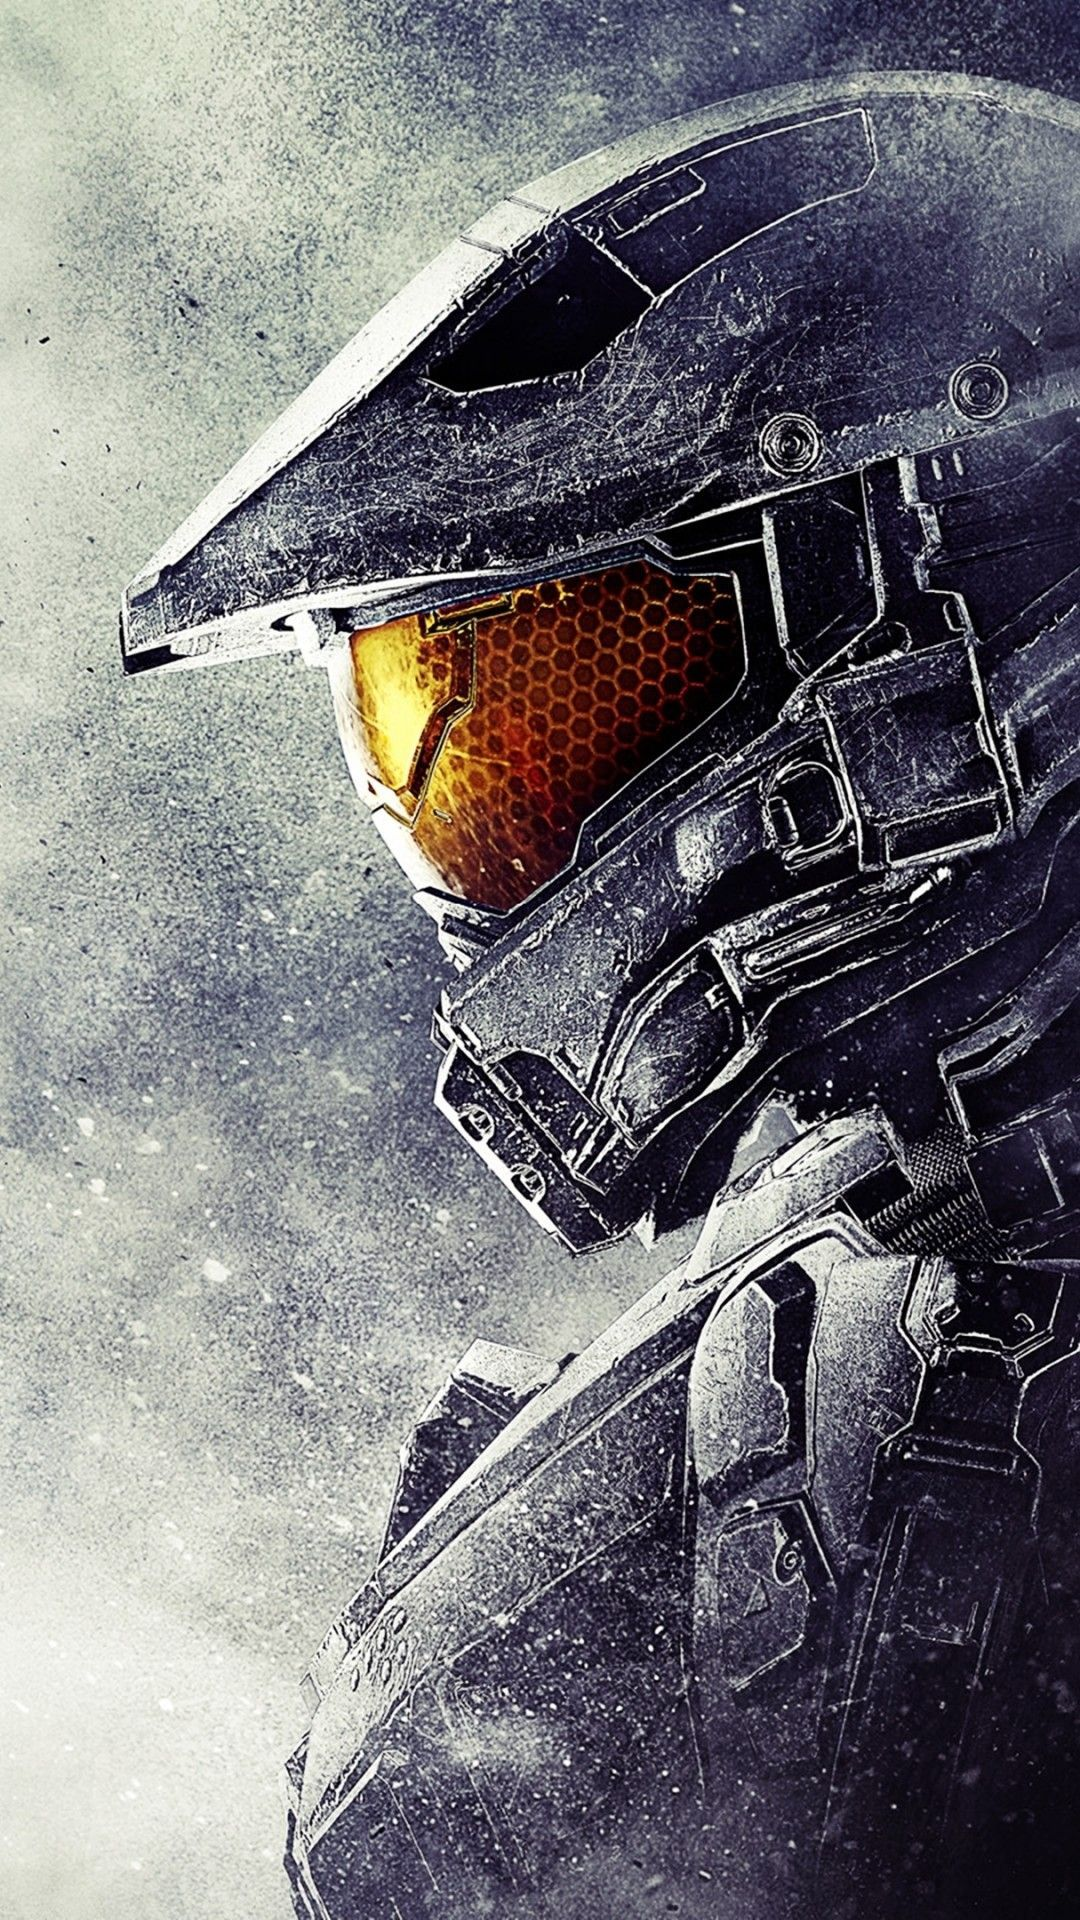 Halo5 Master Chief Iphone Background In 2020 Master Chief Chiefs Wallpaper Halo Master Chief